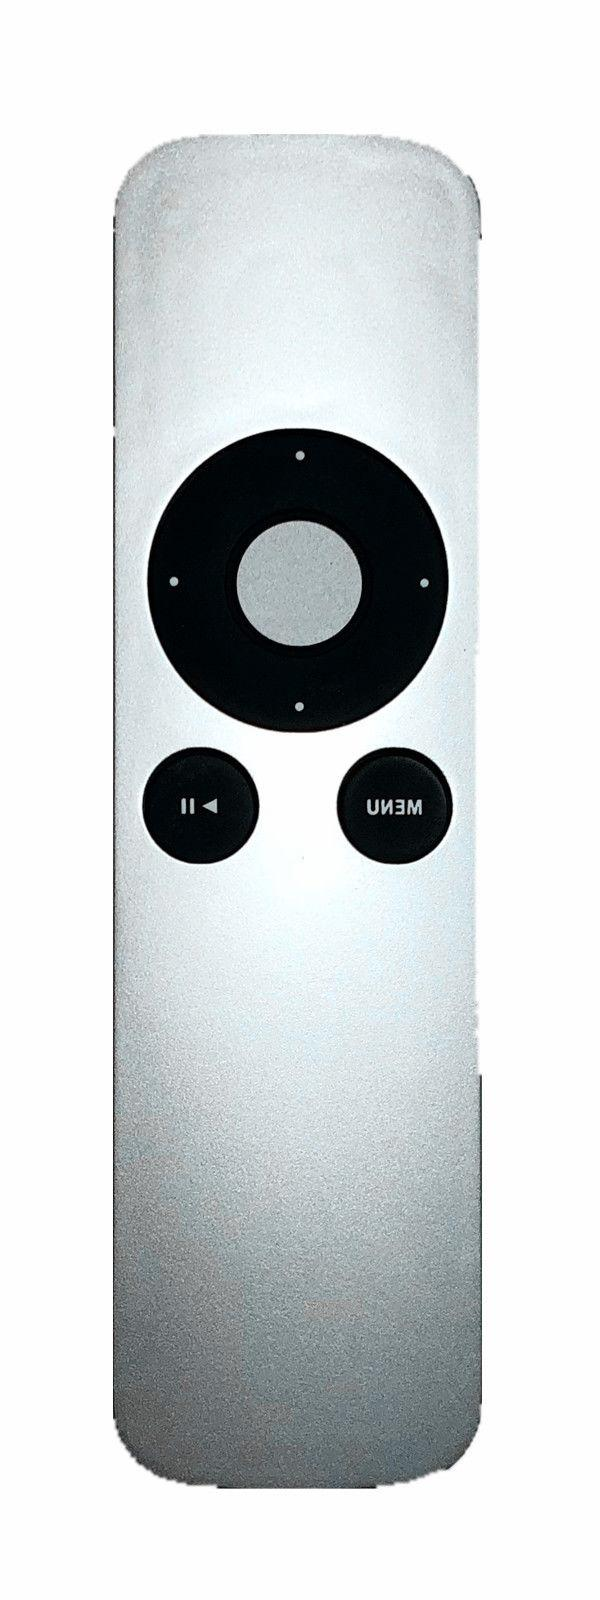 NEW Replacement sub MC377LL/A For Apple TV System Mac